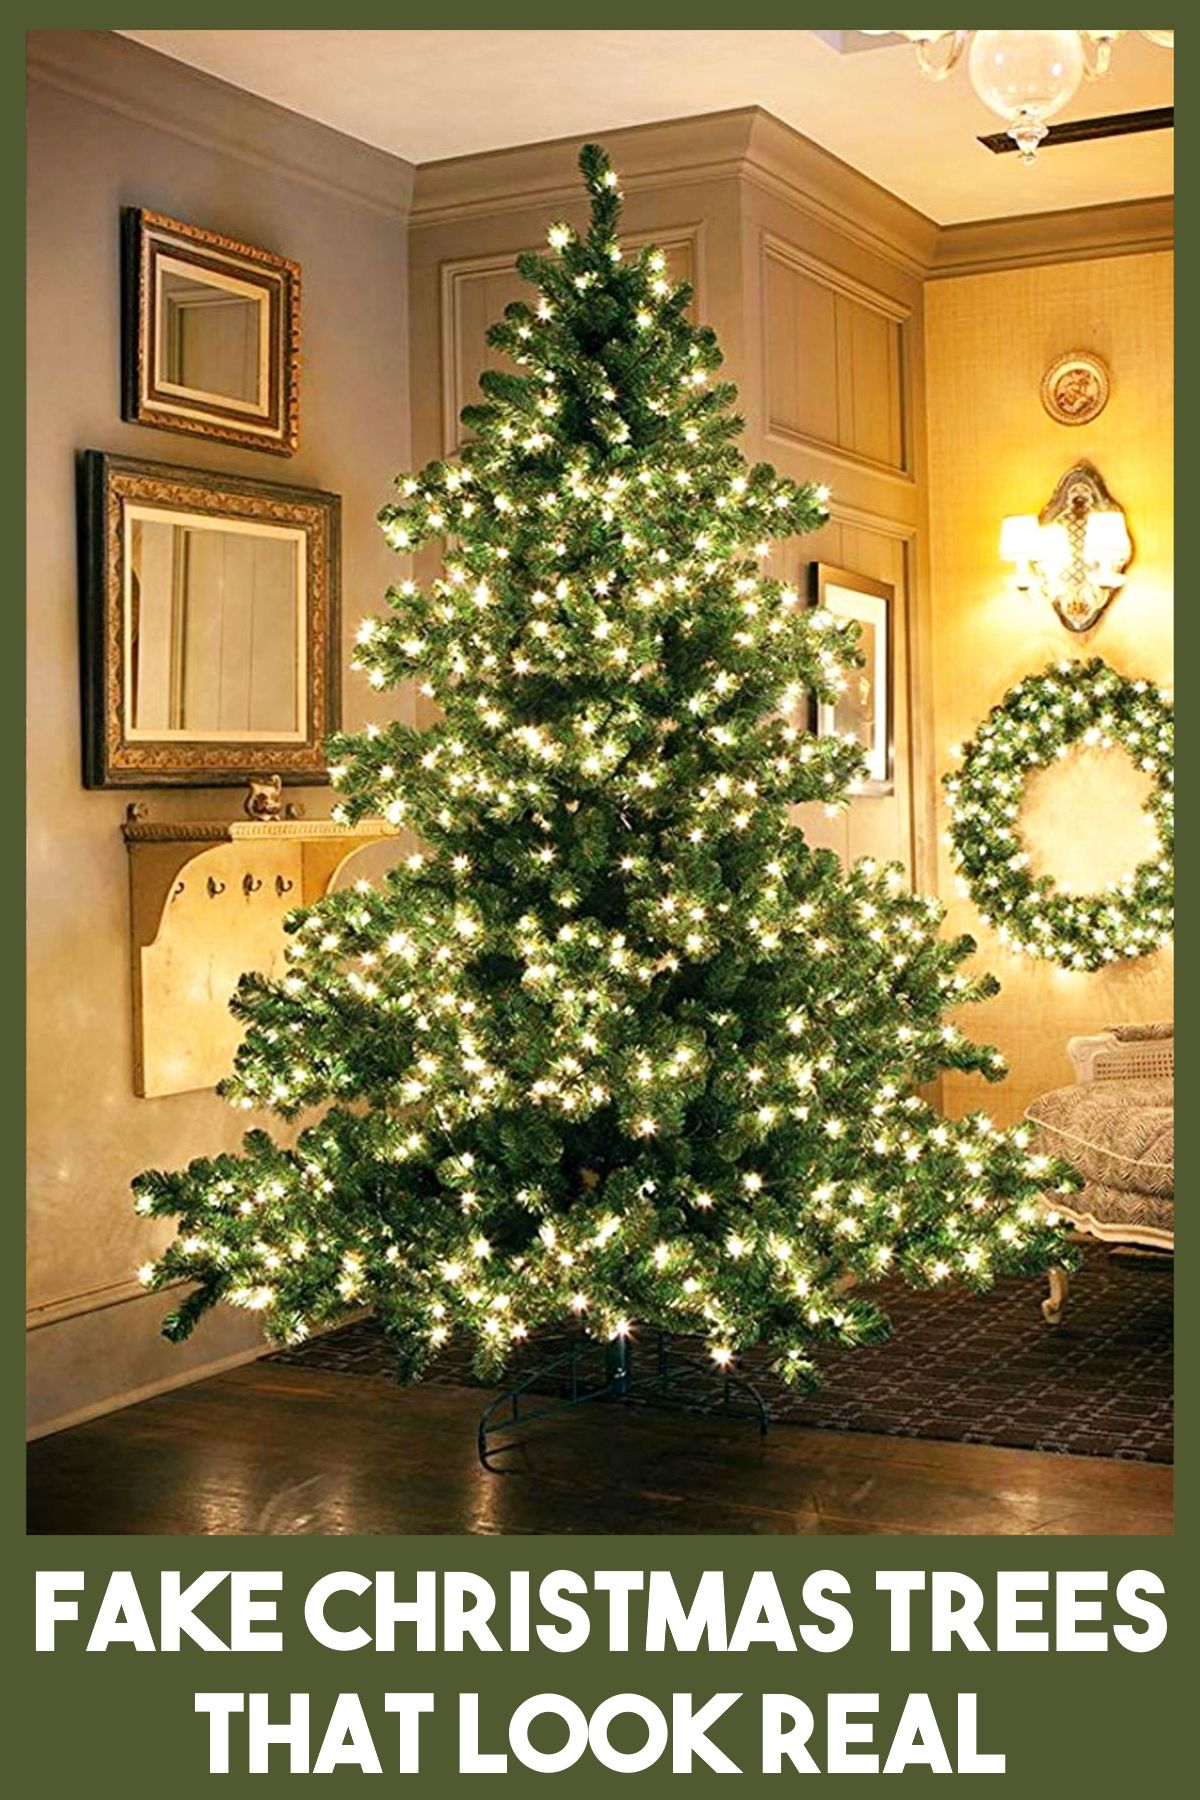 Echter Tannenbaum Most Realistic Artificial Christmas Trees For 2019 Weihnacht